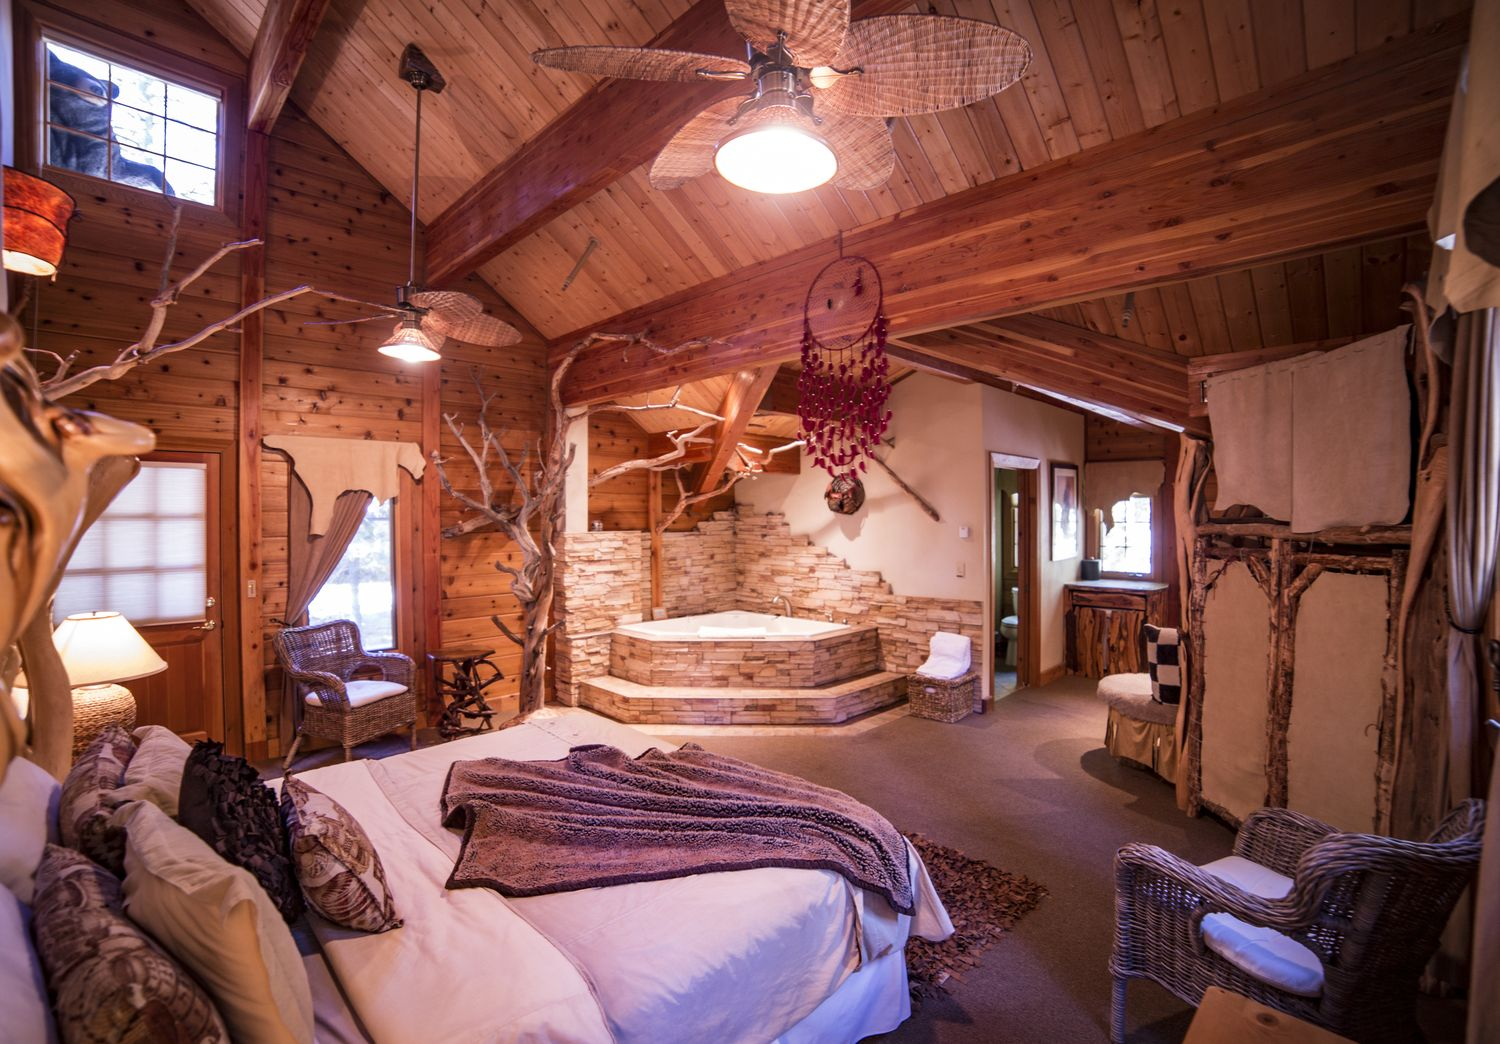 Pleasing An Image Of One Of The Cottage Inn Decorated Rooms Download Free Architecture Designs Scobabritishbridgeorg